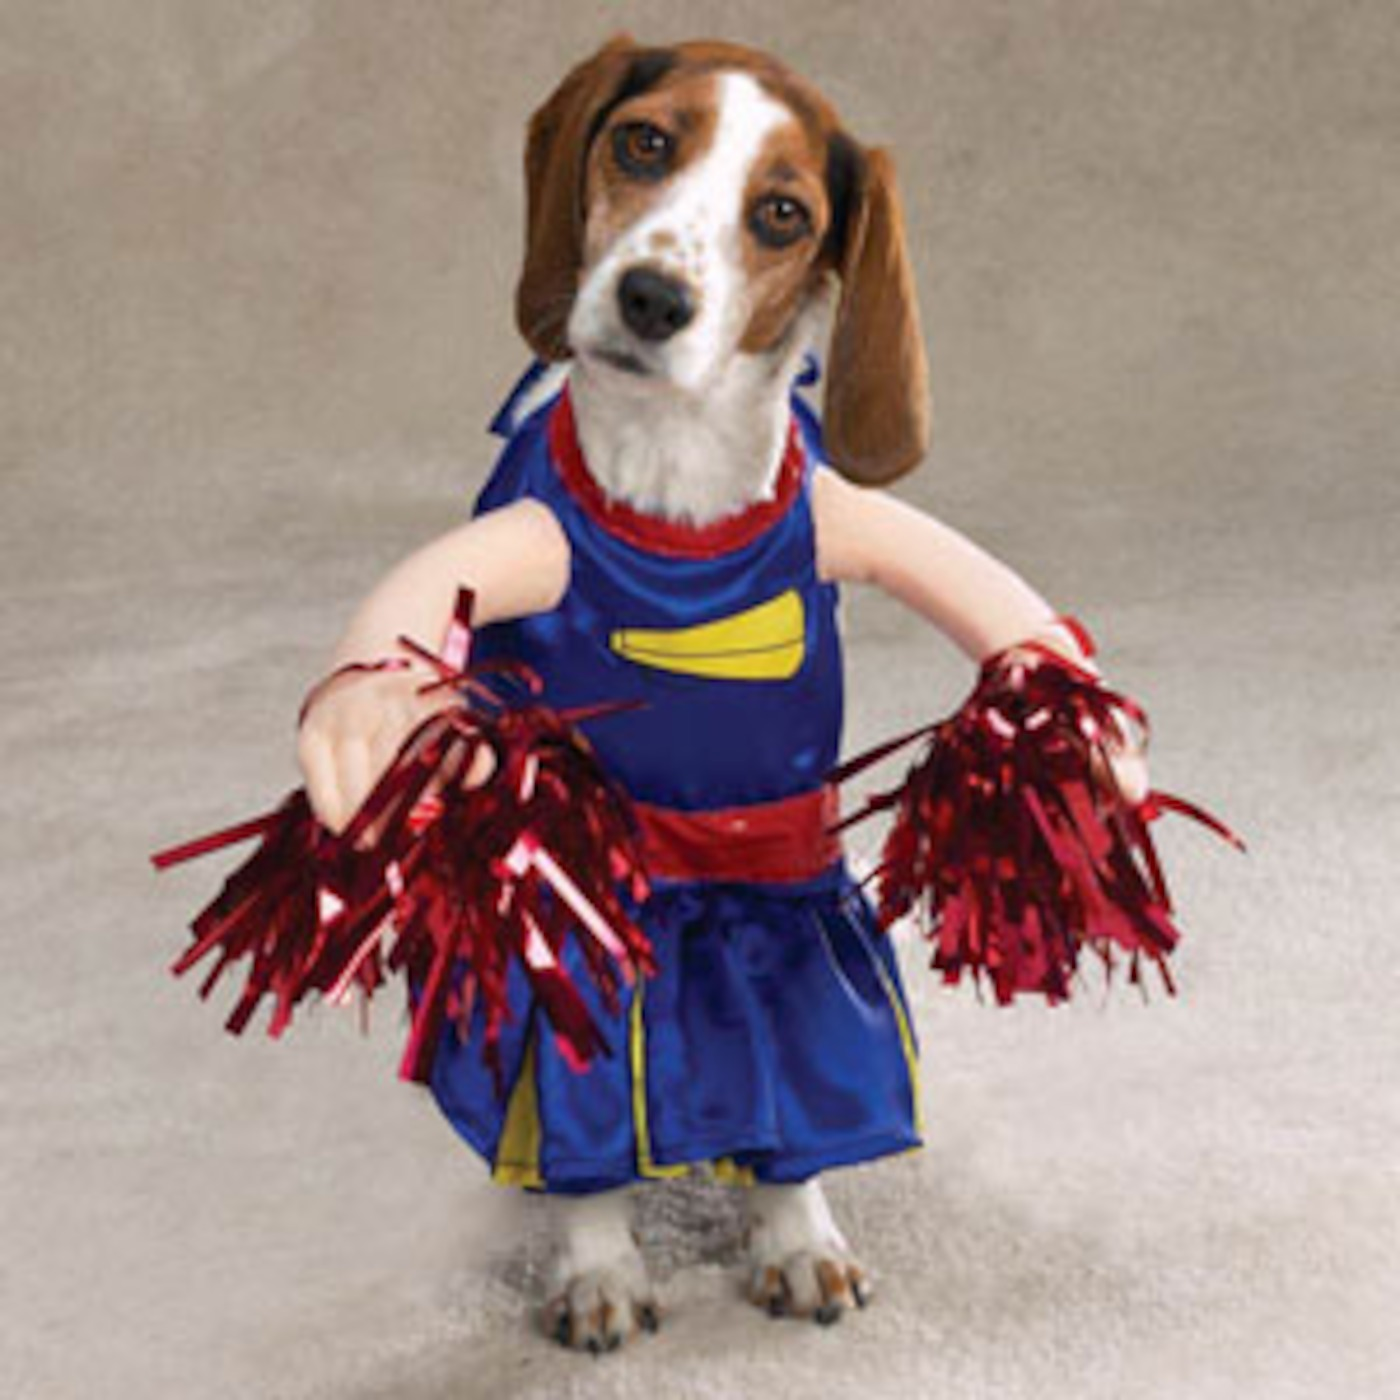 Funny Dog Cheerleader Picture